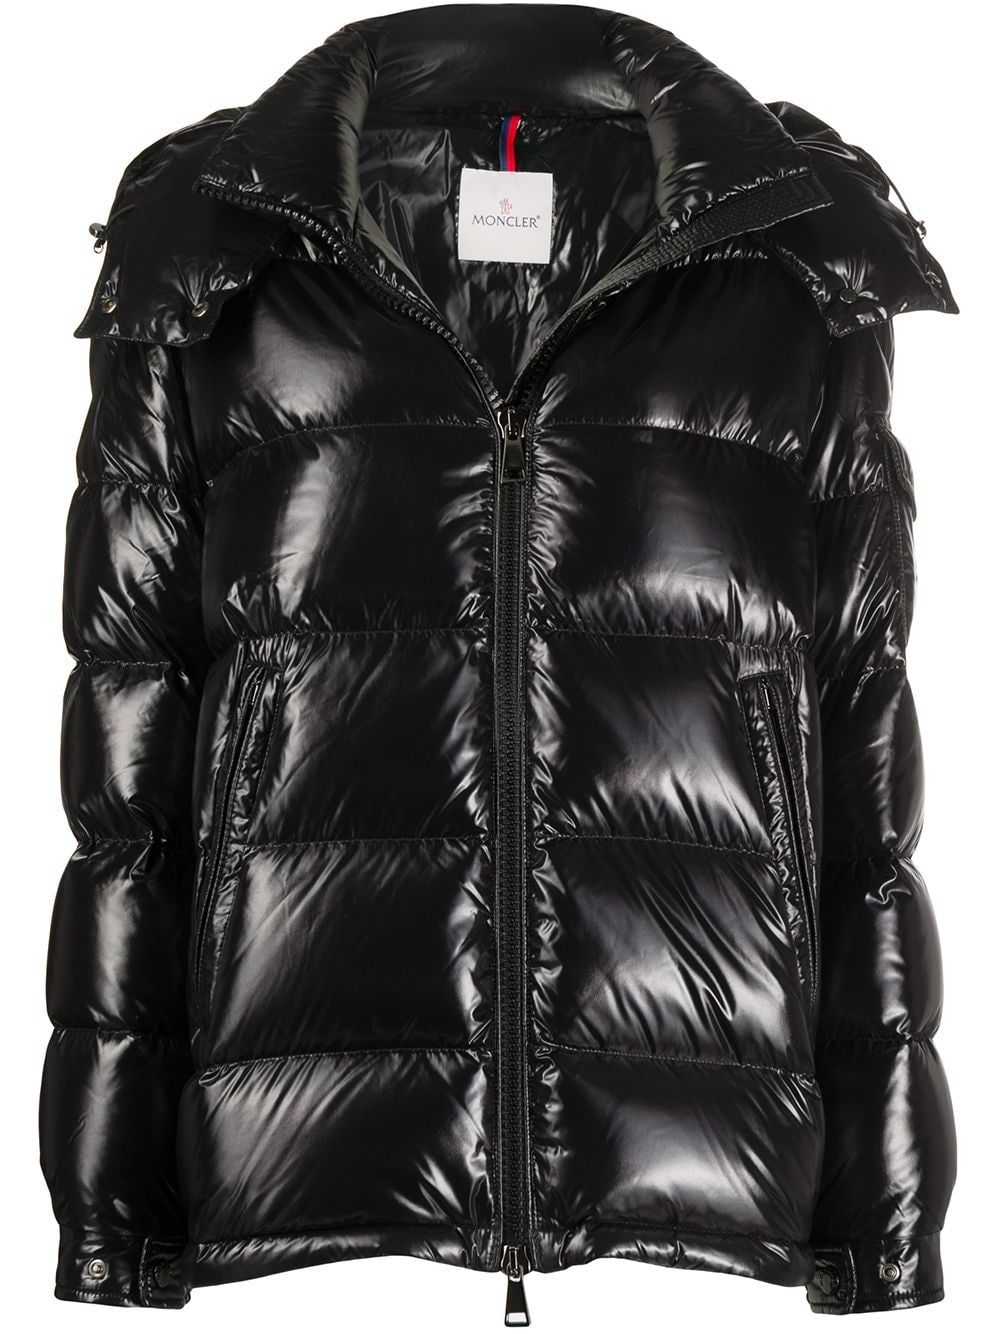 Moncler Quilted Zipped Puffer Jacket Farfetch In 2021 Moncler Jacket Women Moncler Puffer Jackets [ 1334 x 1000 Pixel ]